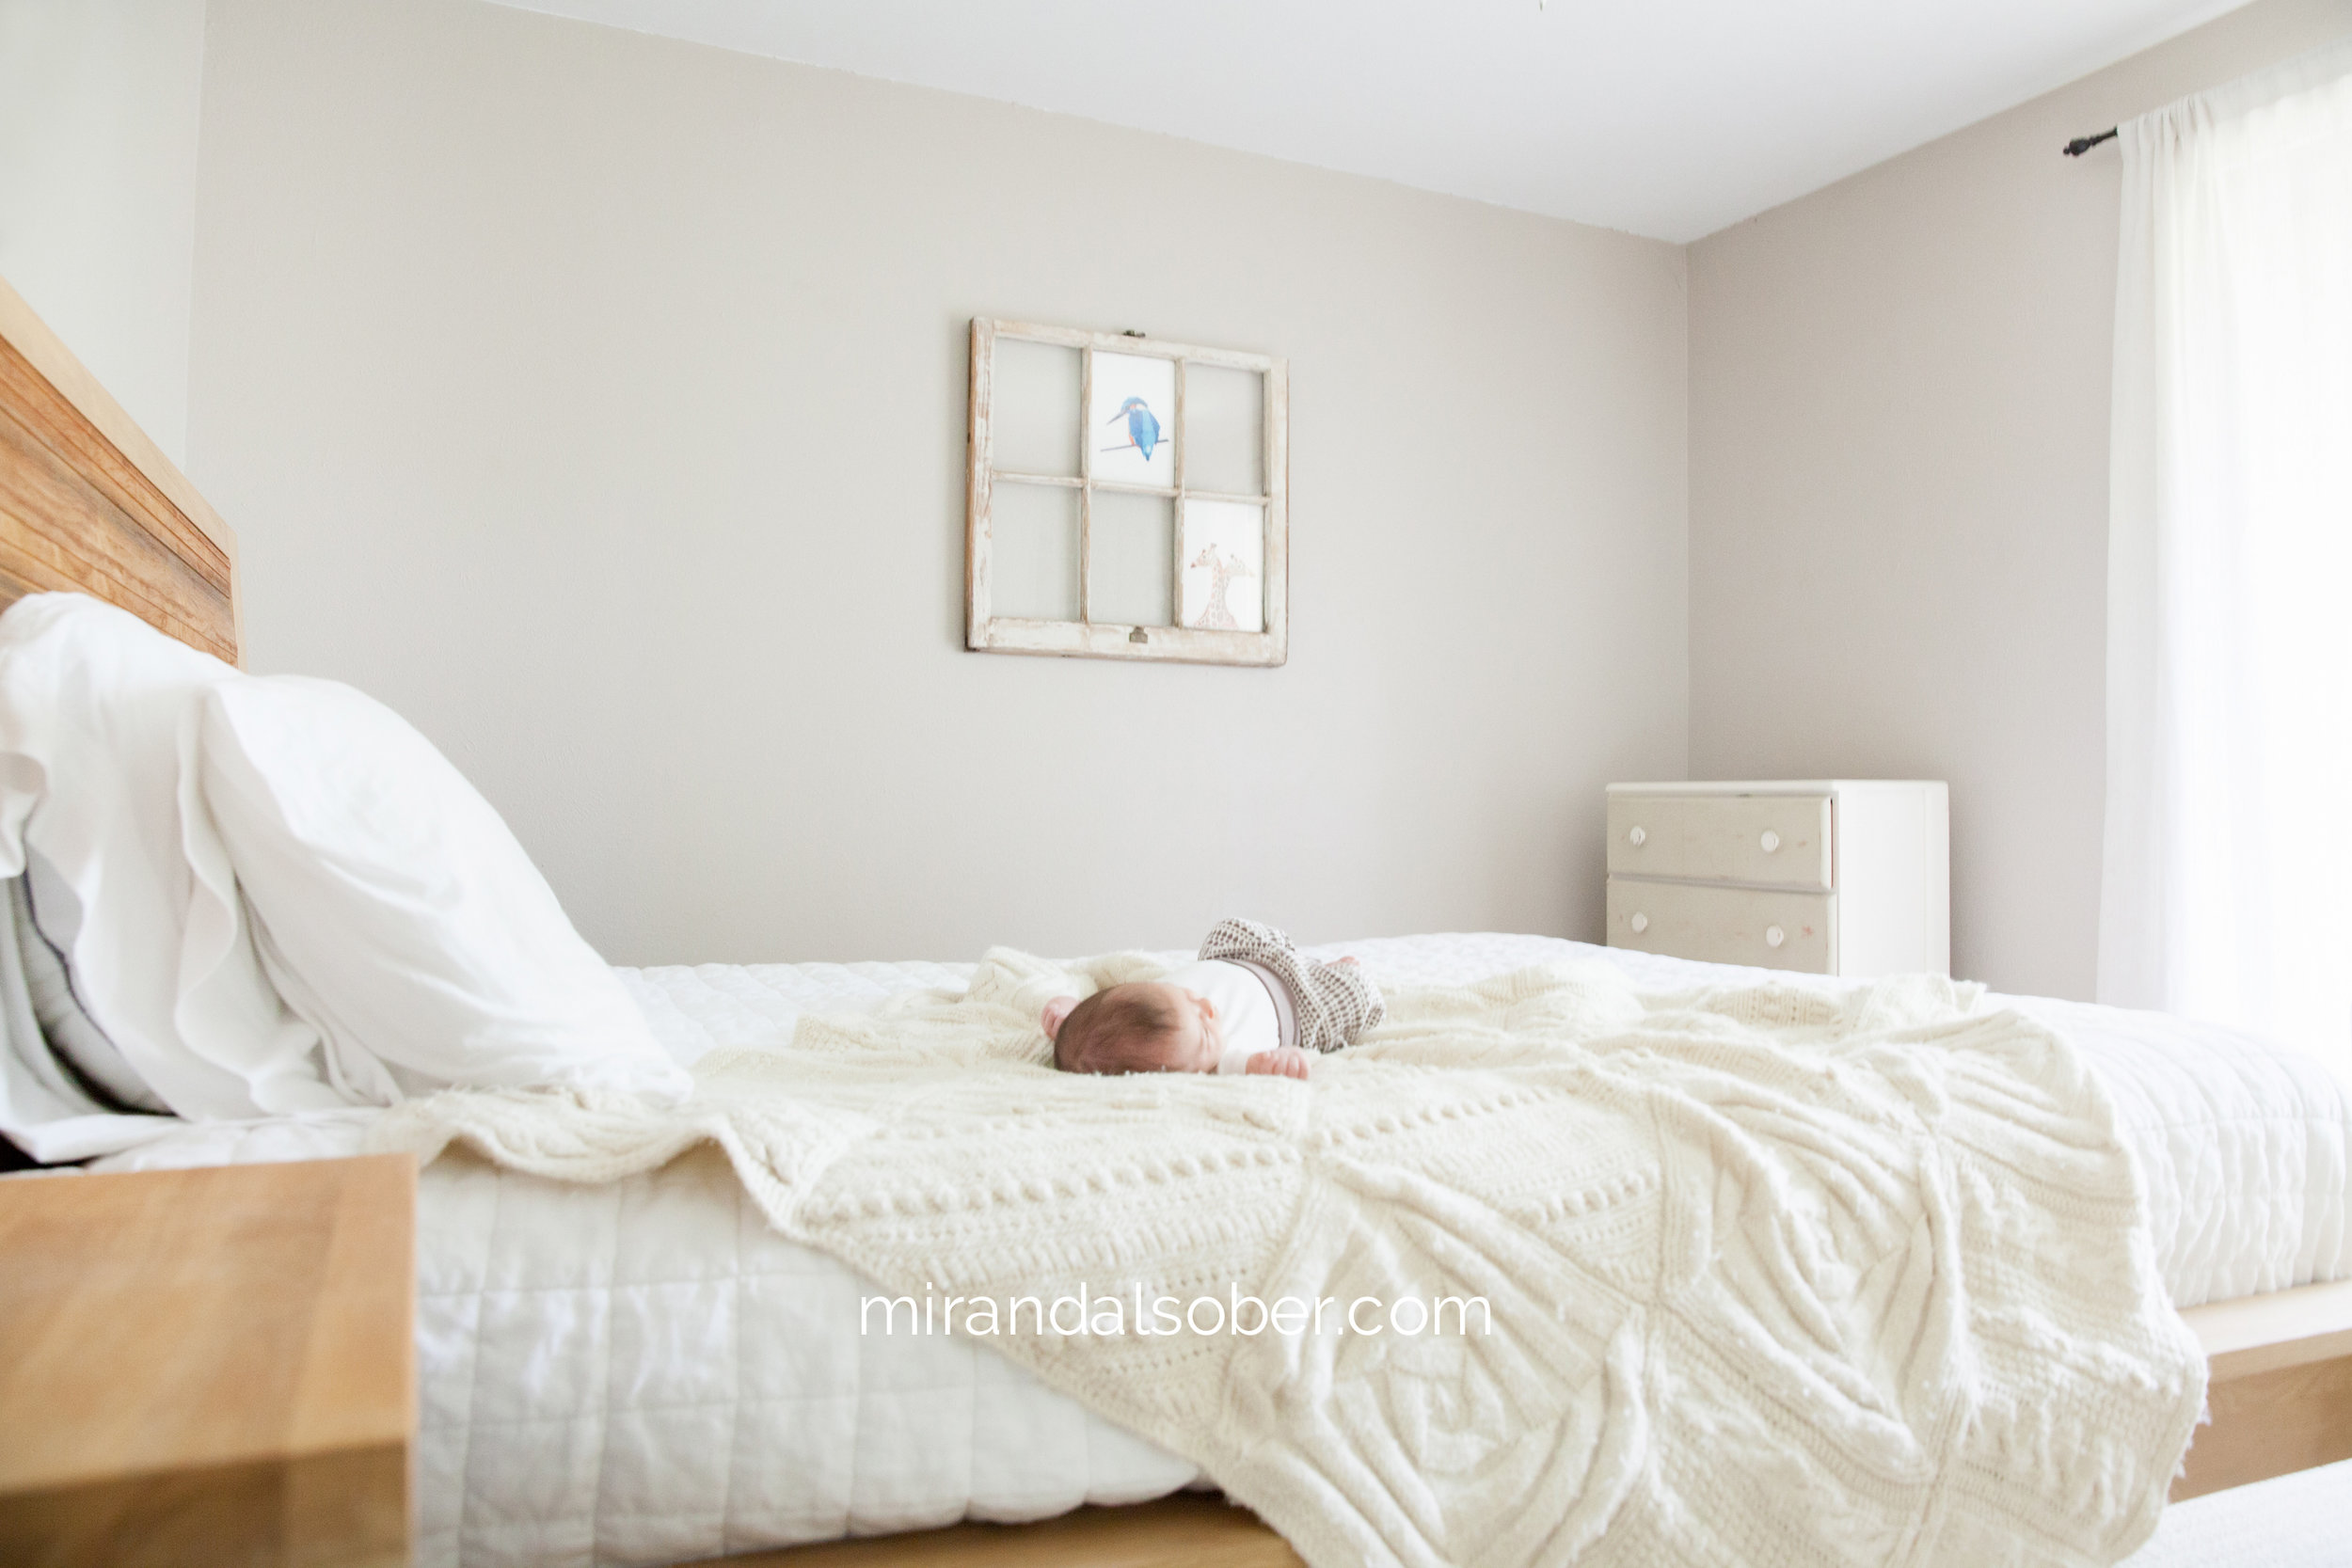 Boulder newborn photographer, lifestyle baby photographer Miranda L. Sober Photography